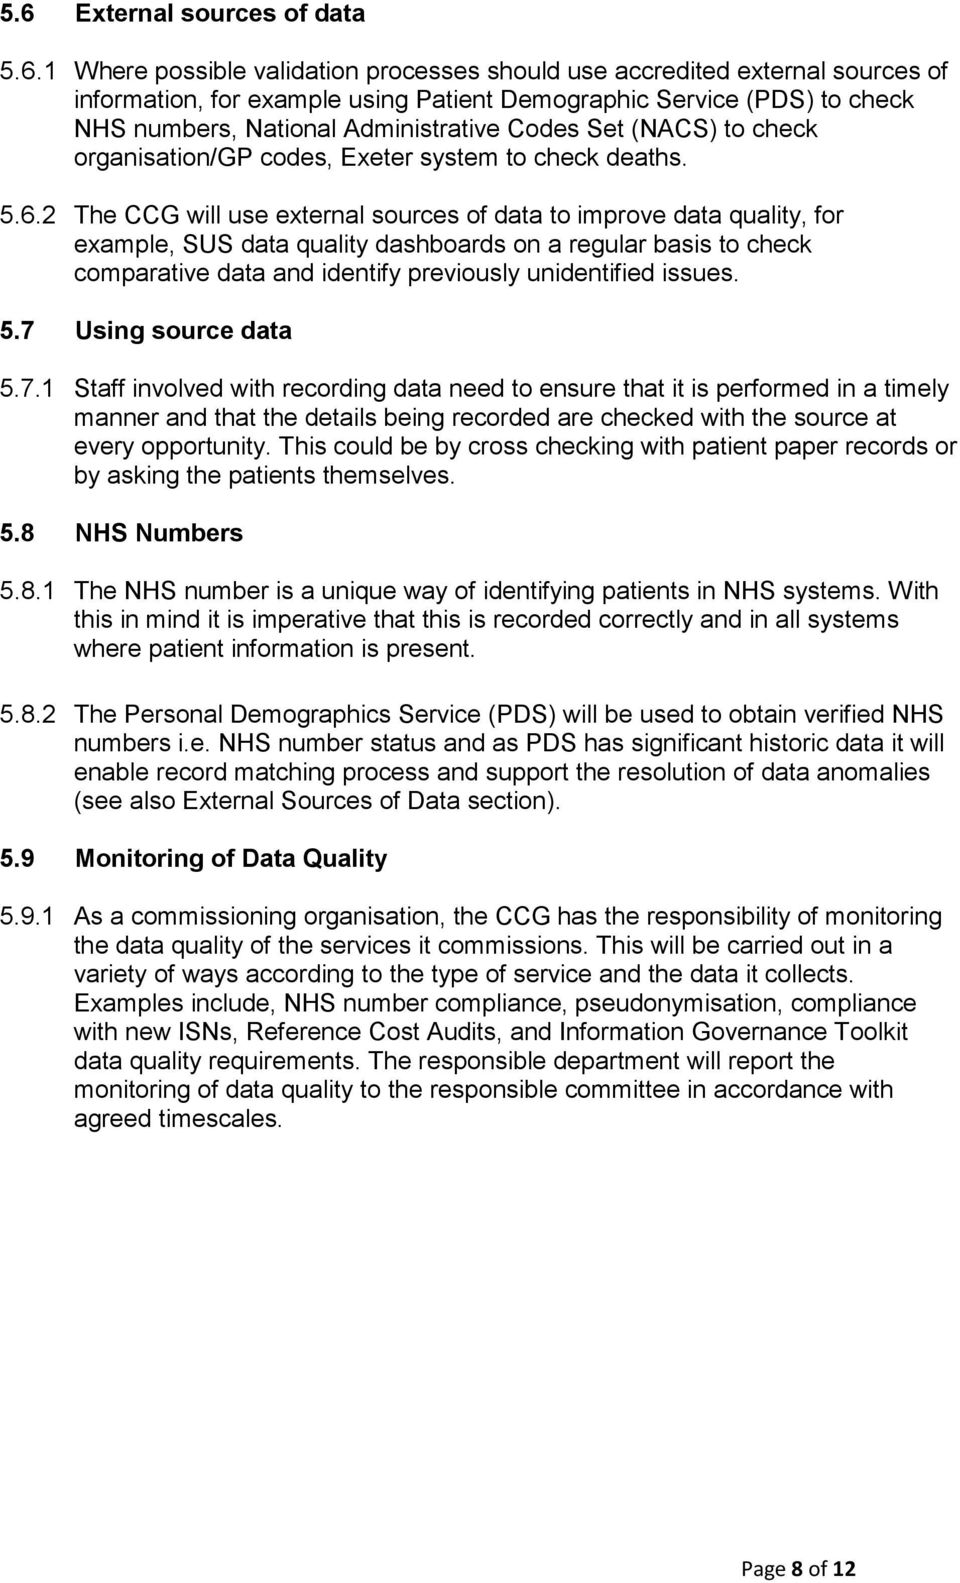 2 The CCG will use external sources of data to improve data quality, for example, SUS data quality dashboards on a regular basis to check comparative data and identify previously unidentified issues.